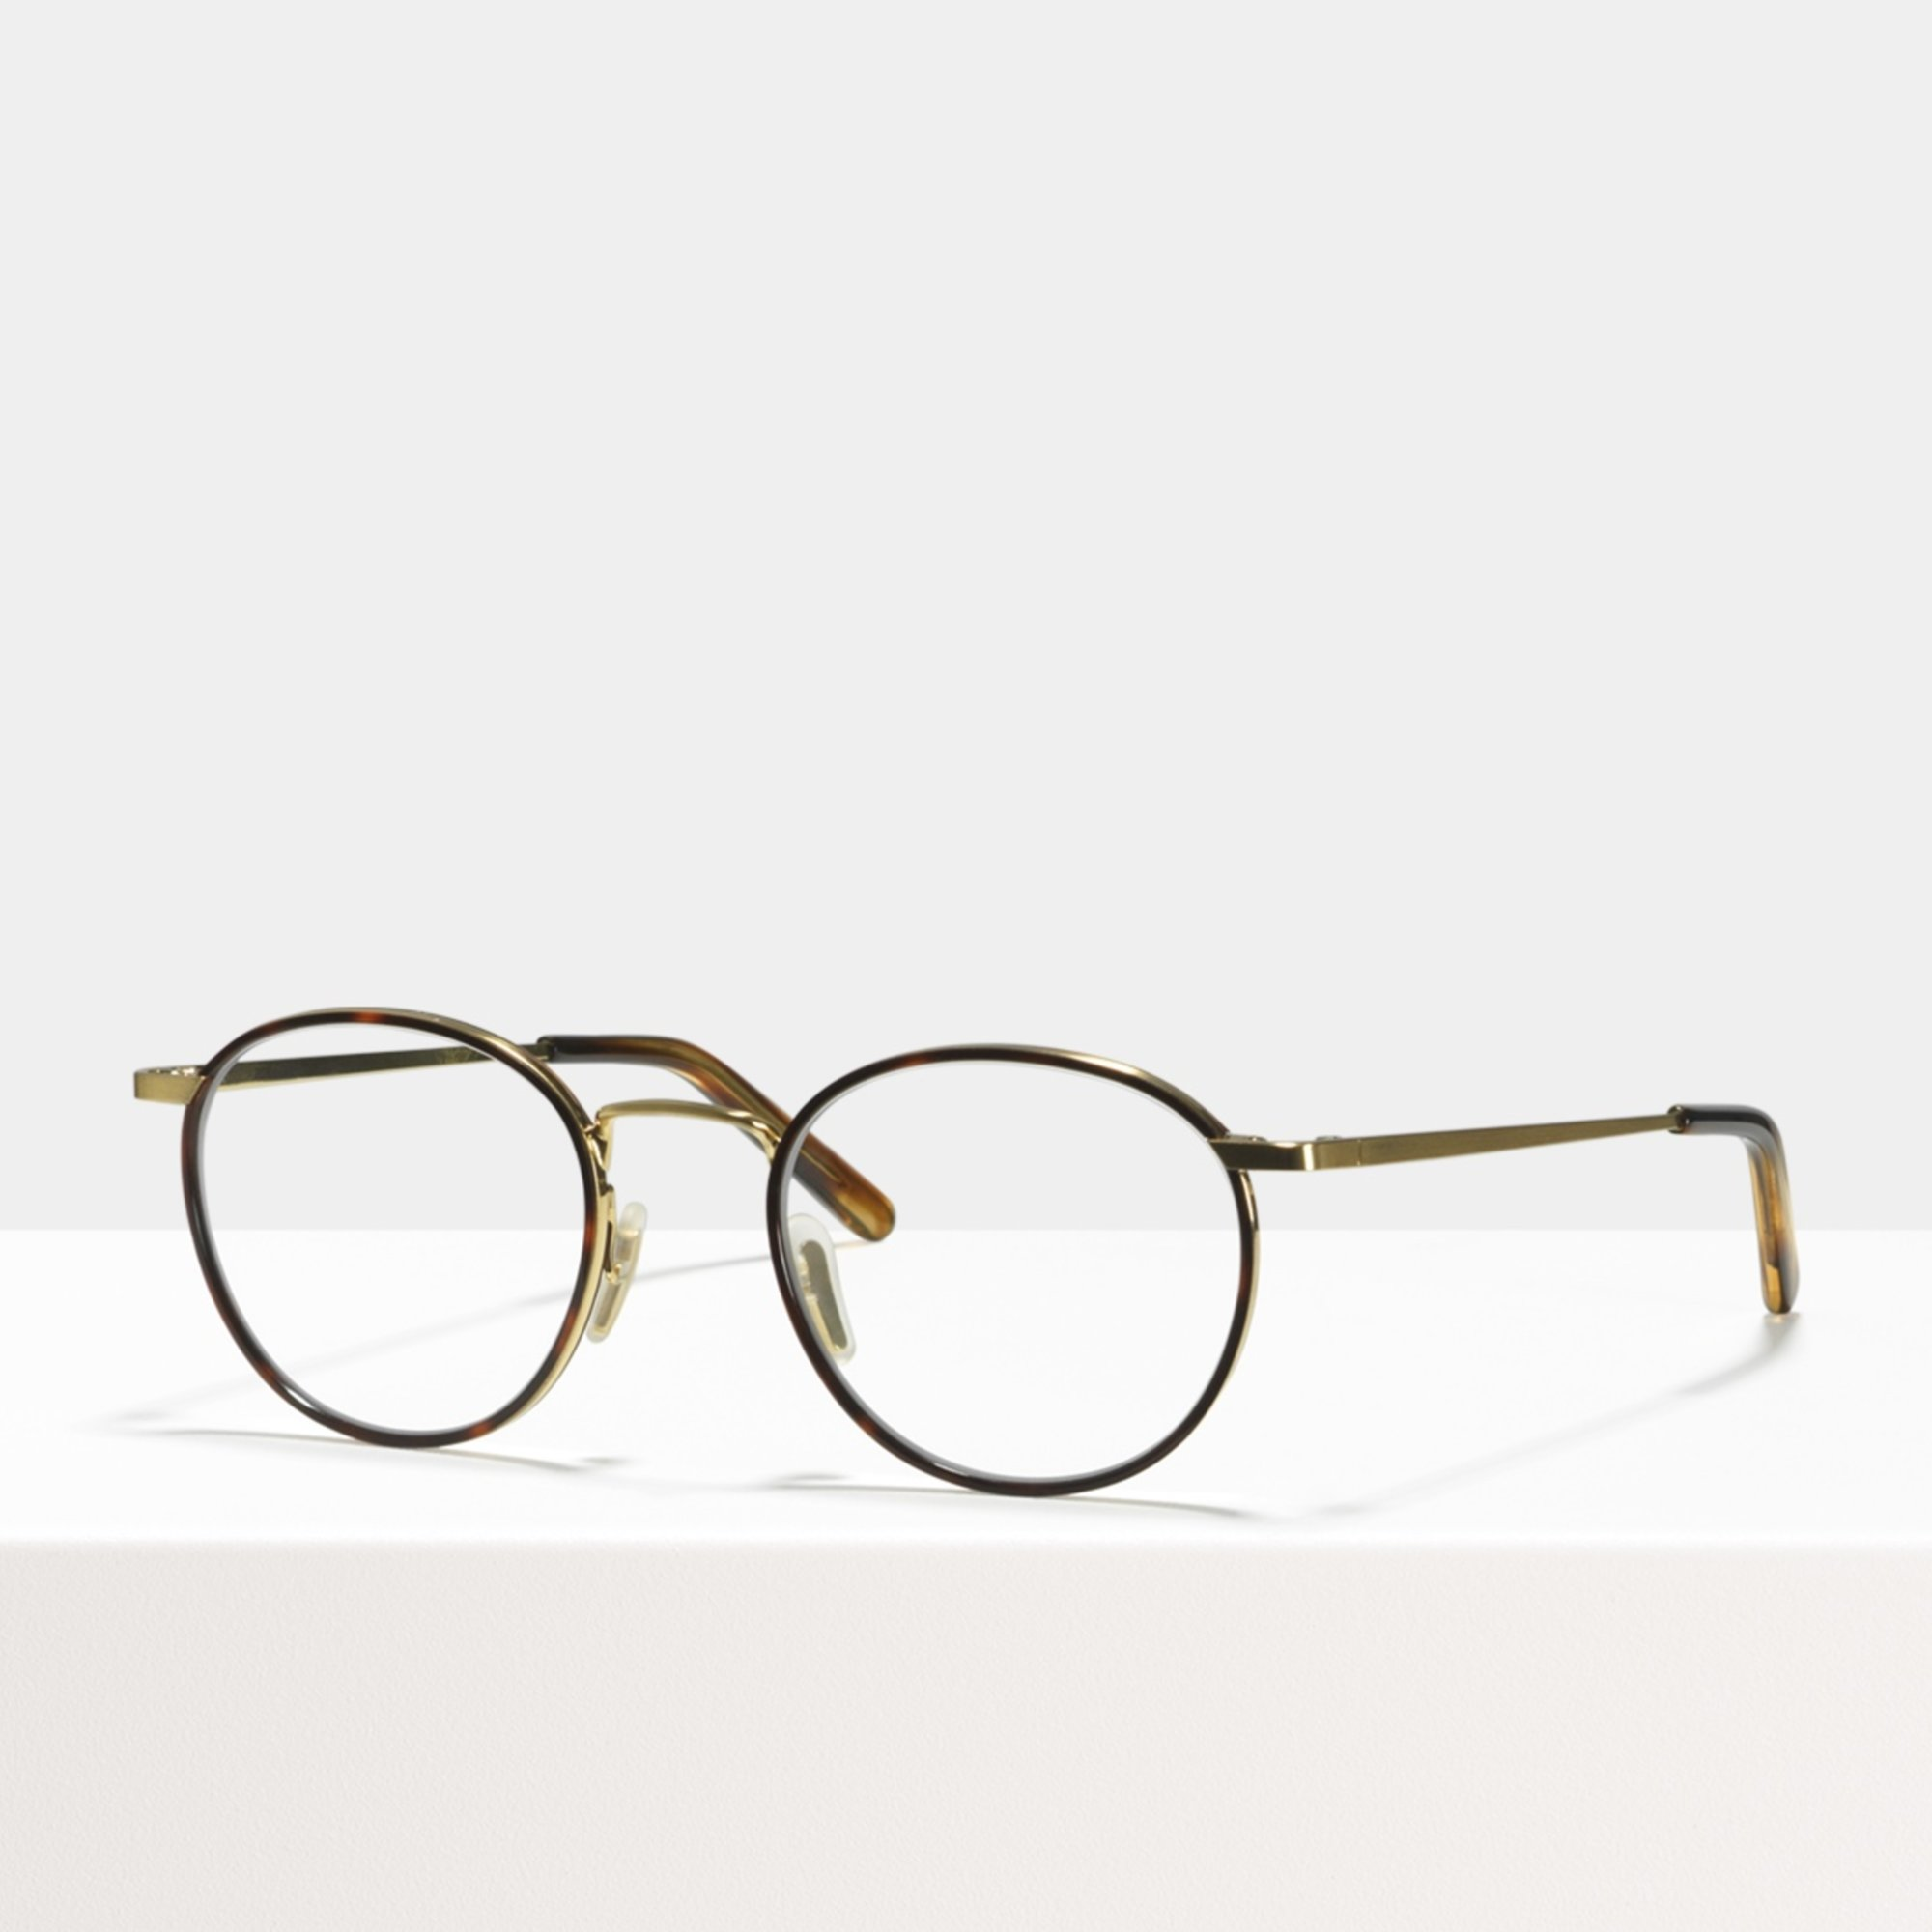 Ace & Tate Glasses | round metal in Beige, Brown, Gold, tortoise, Yellow